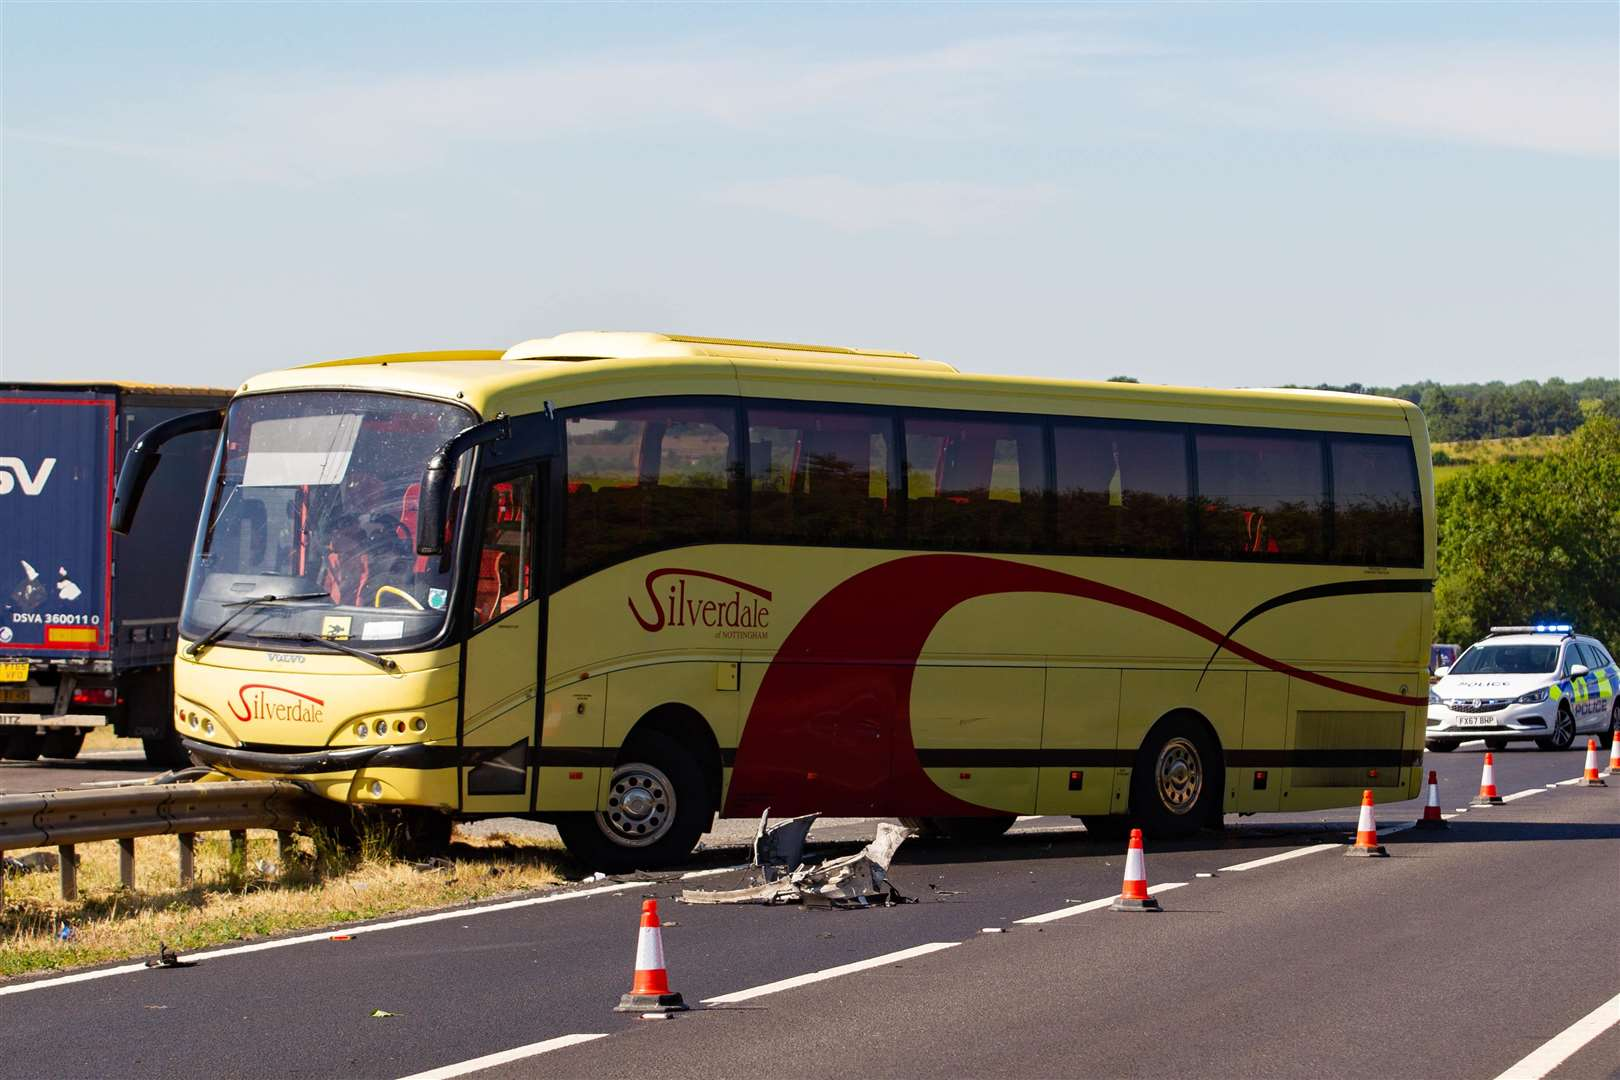 Bus full of children collides with 4X4 on A1 Lincs,A1 Great North Road, ColsterworthMonday 02 July 2018. Picture by Terry Harris www.terry-harris.com (2830363)